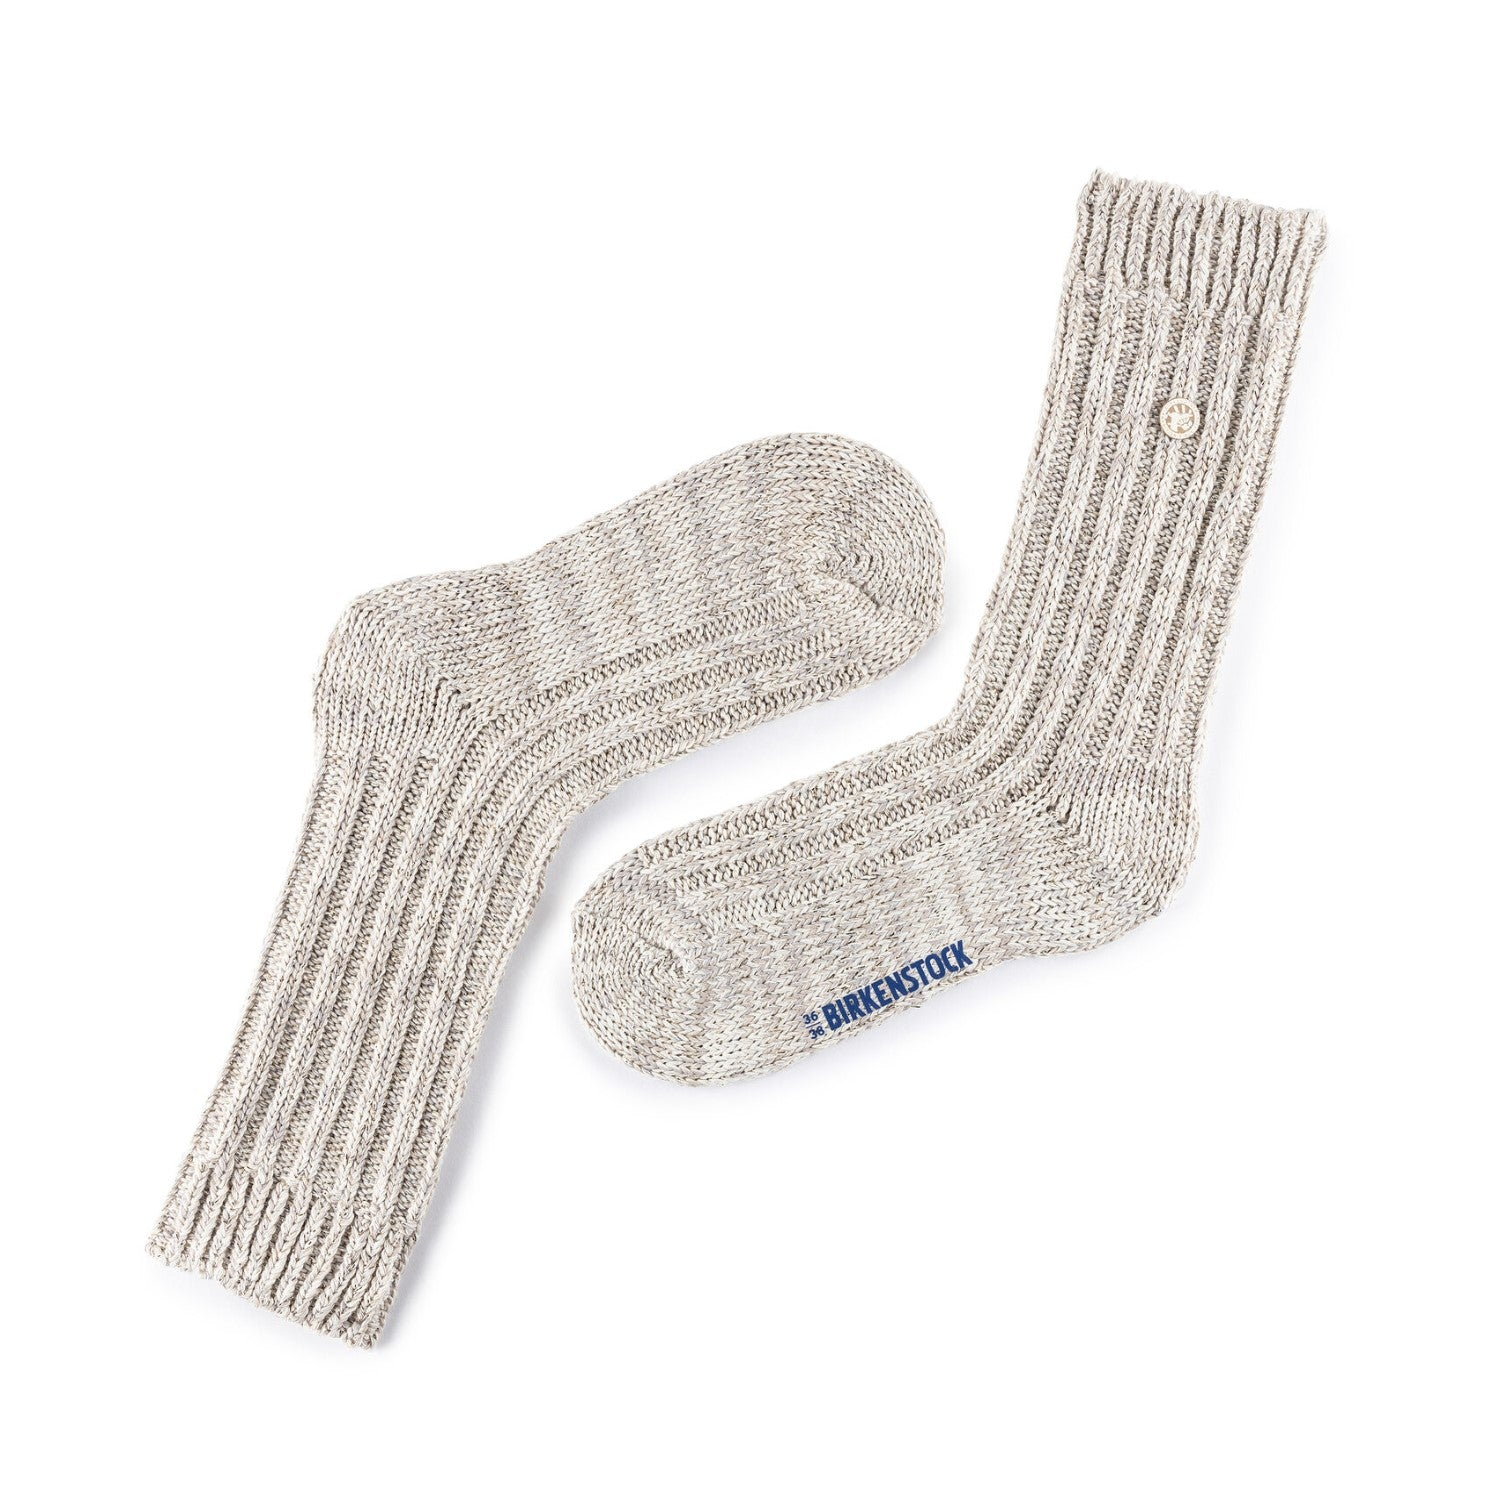 BIRK-COTTON BLING SOCKS WOMEN-EGGNOG